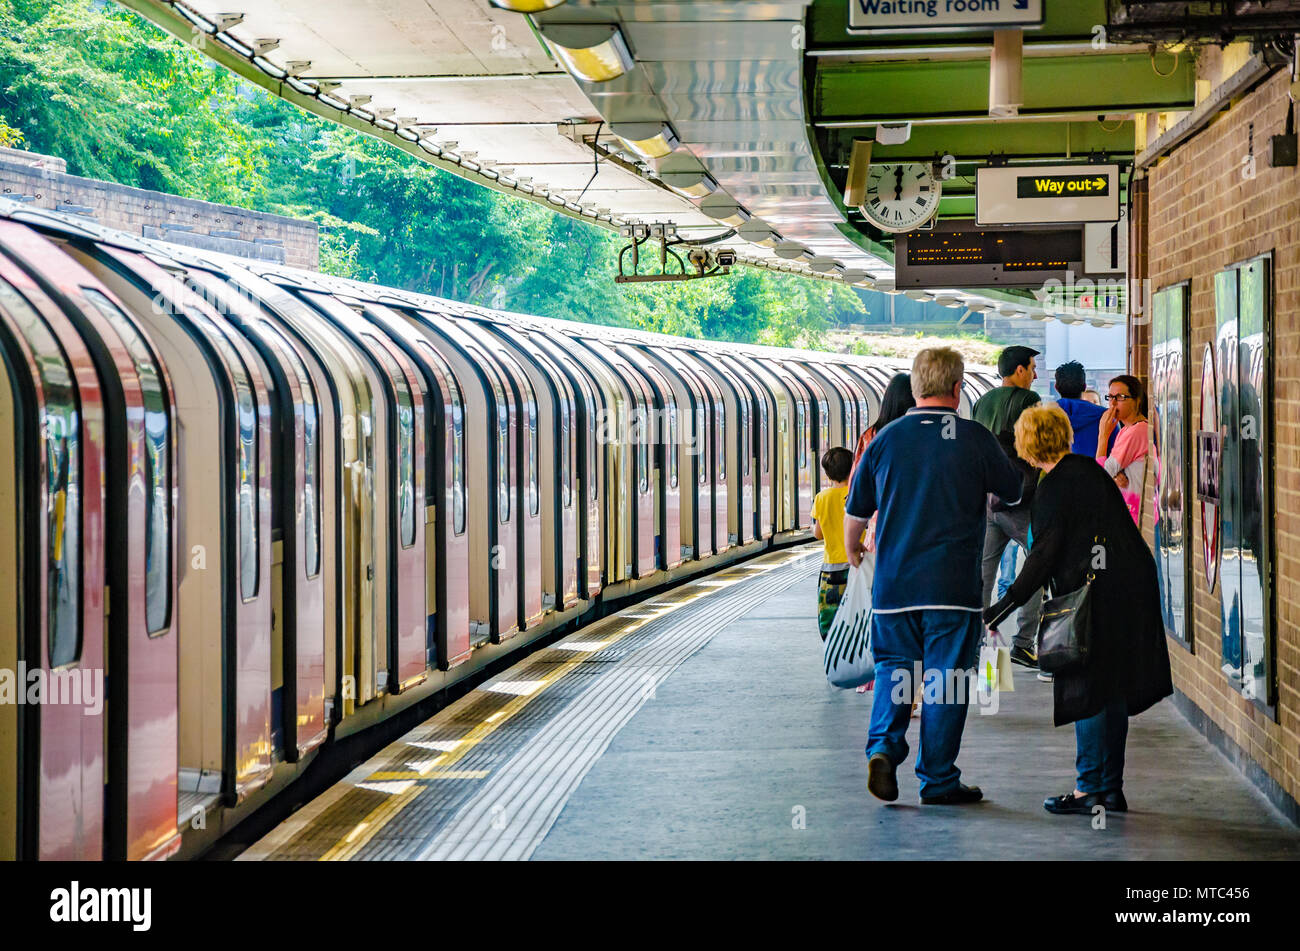 A train waits int he station as passengers walk down the platform at White City London Underground Station. - Stock Image